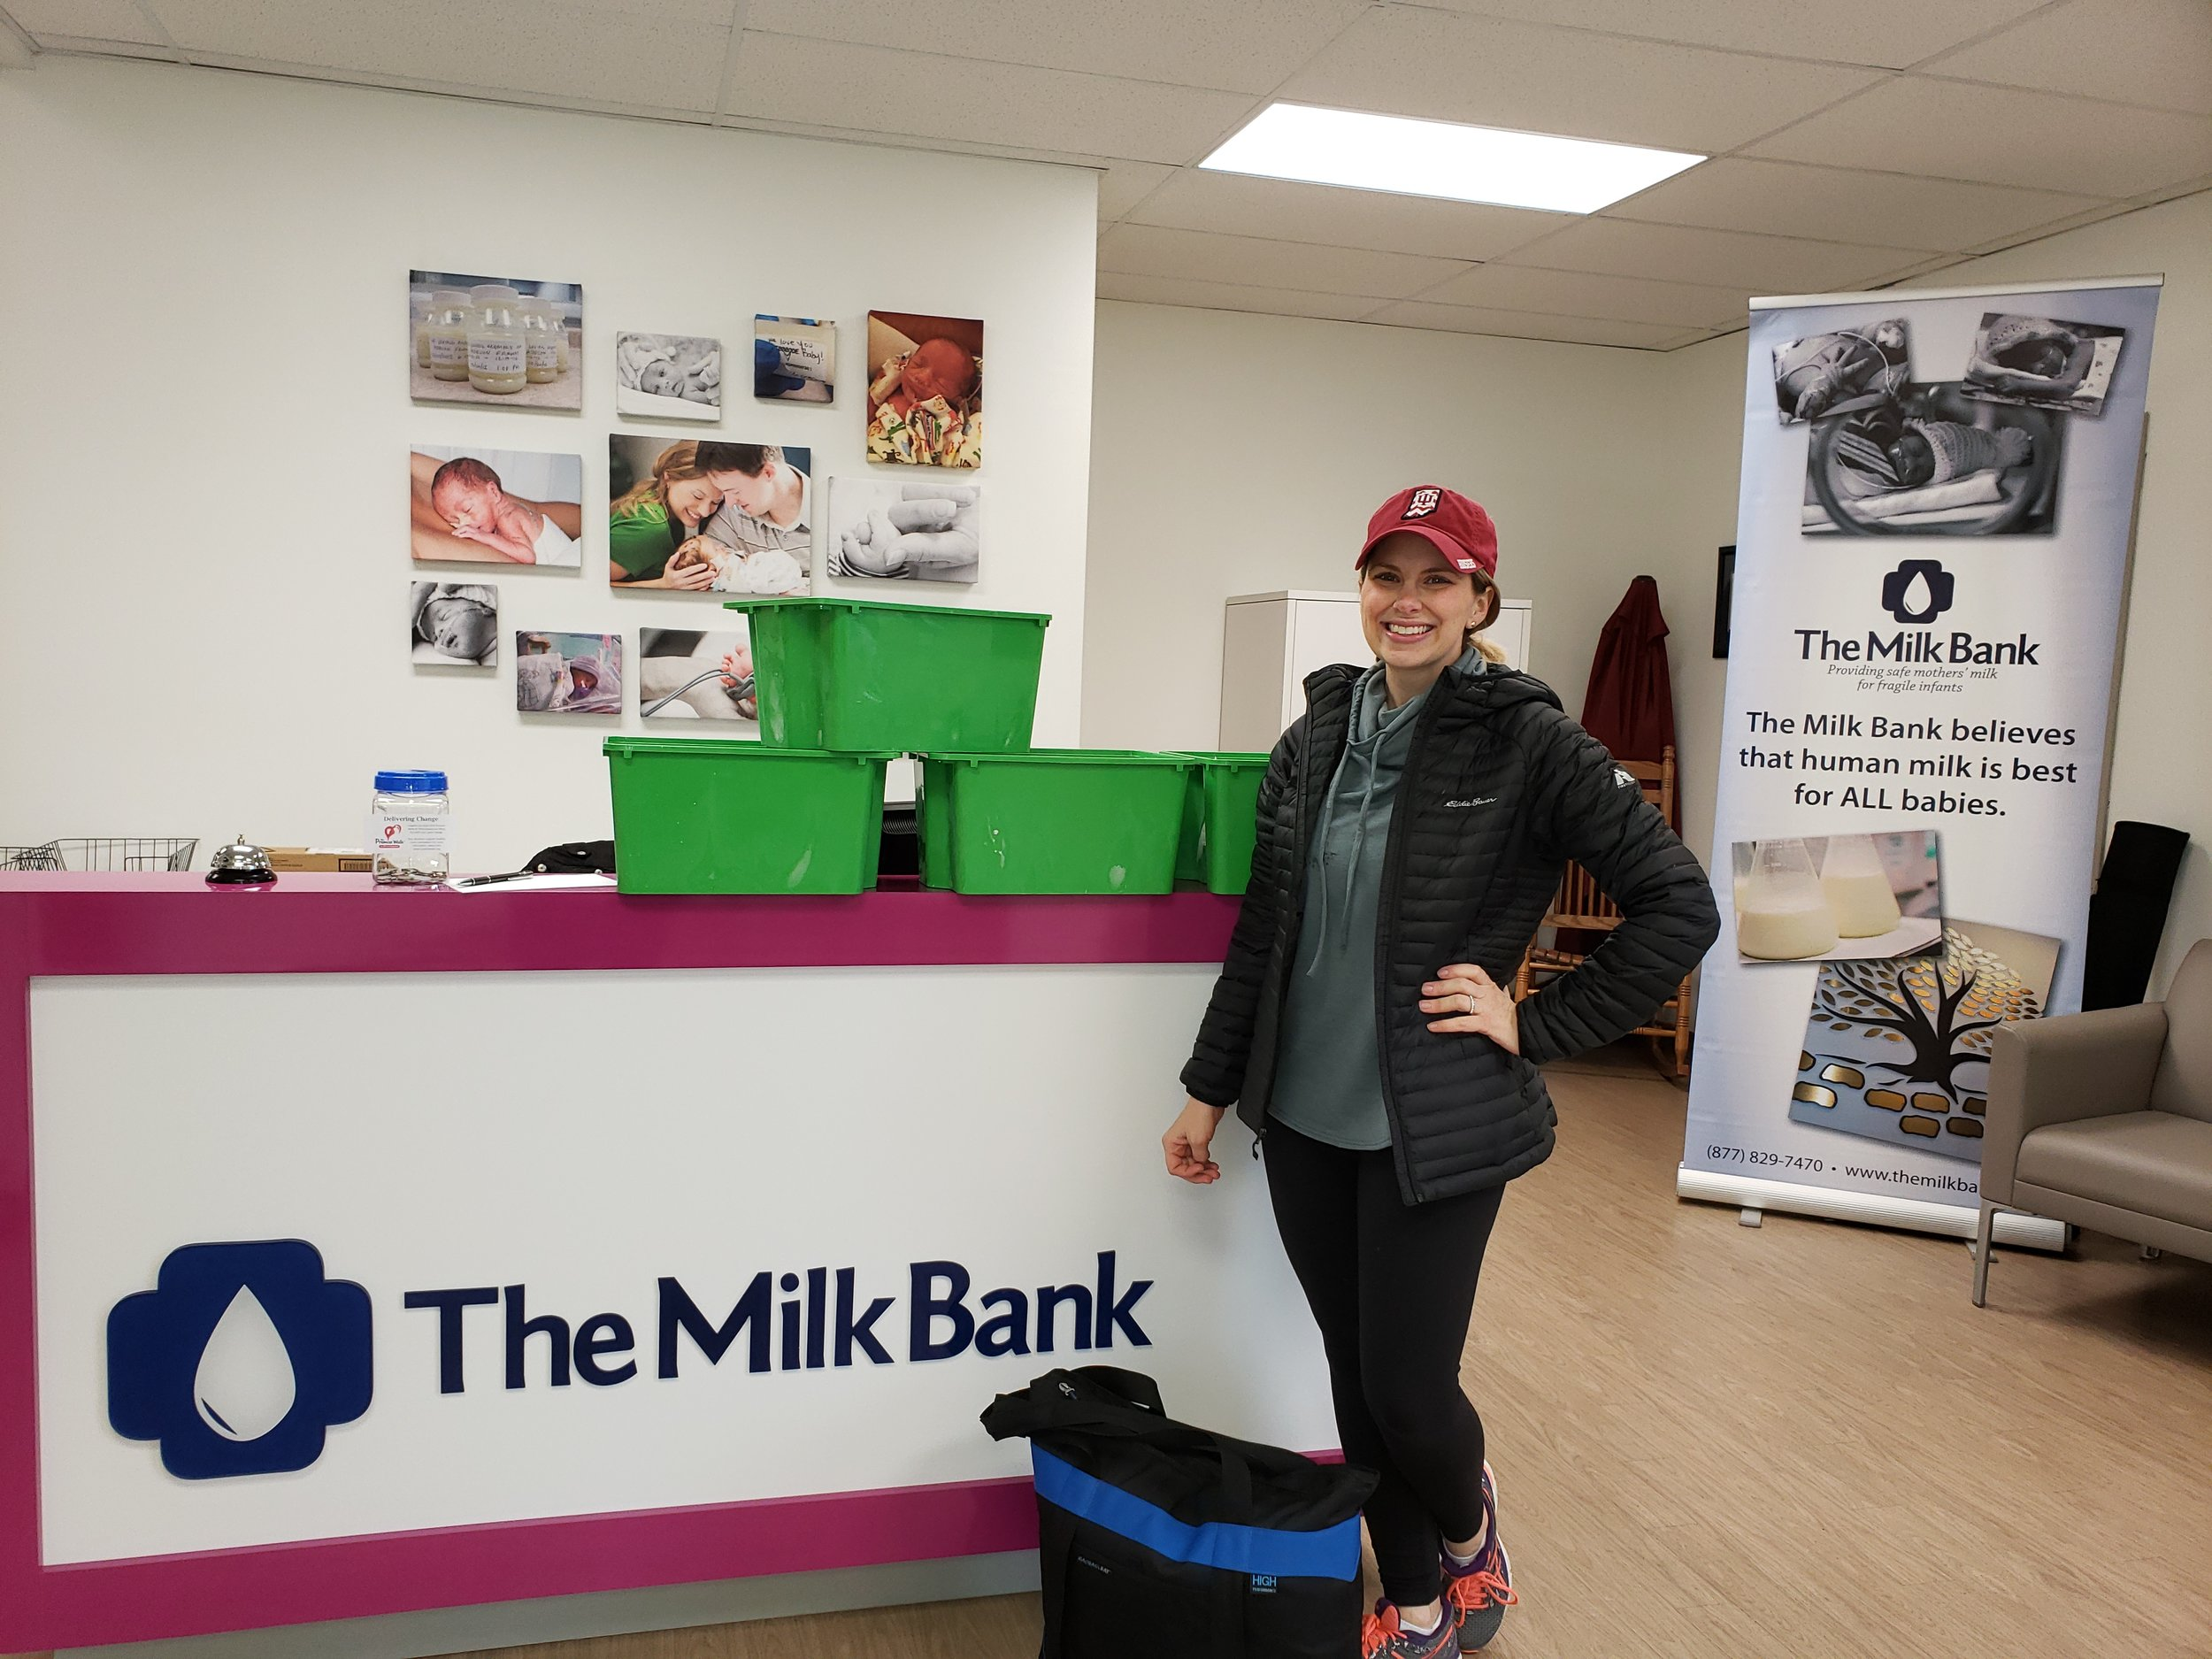 An approved donor drops off a milk donation at the office.